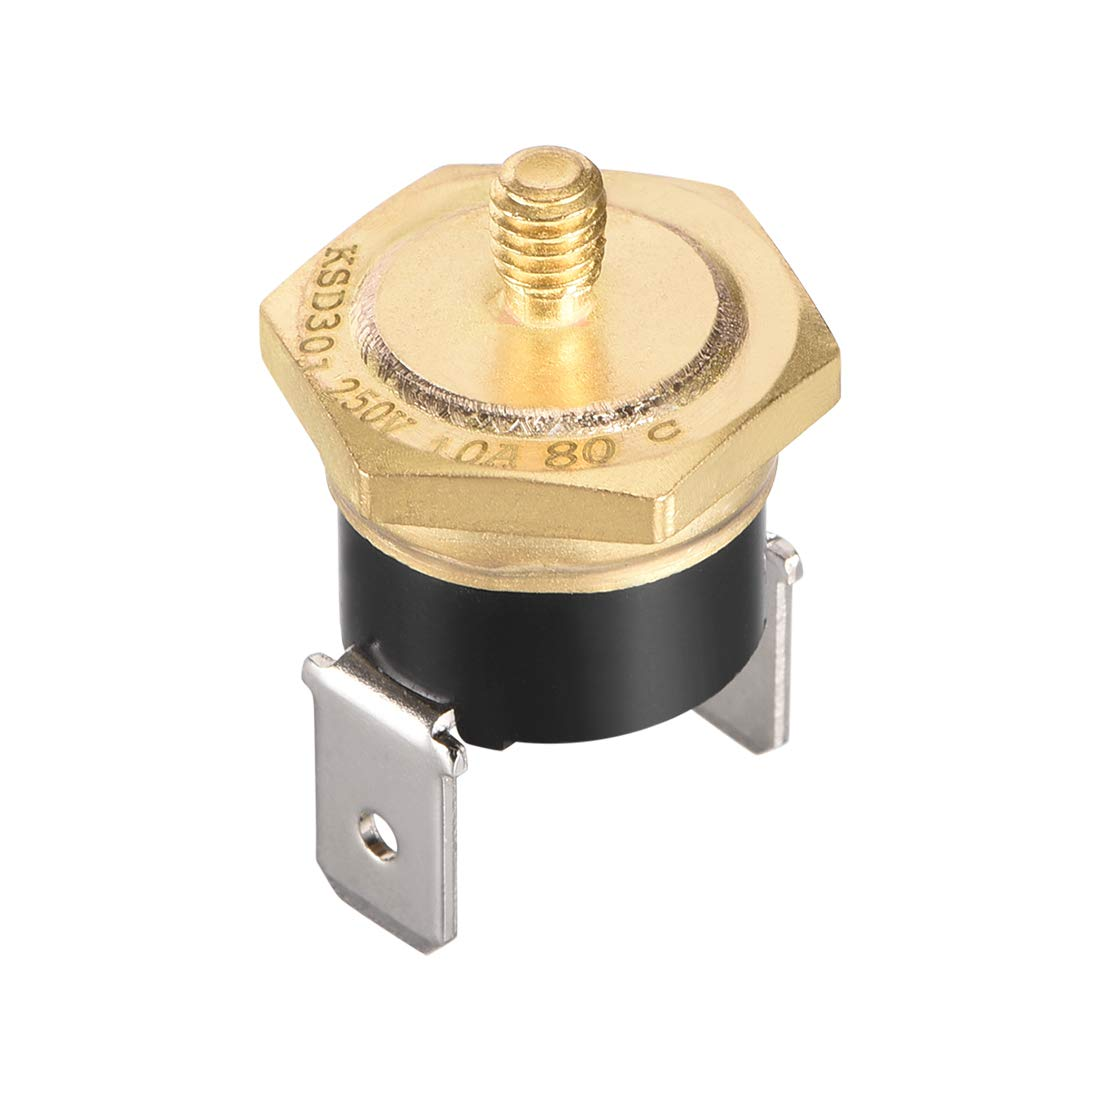 uxcell KSD301 Thermostat, Temperature Control Switch 80°C Copper M4 Normally Closed N.C 10A